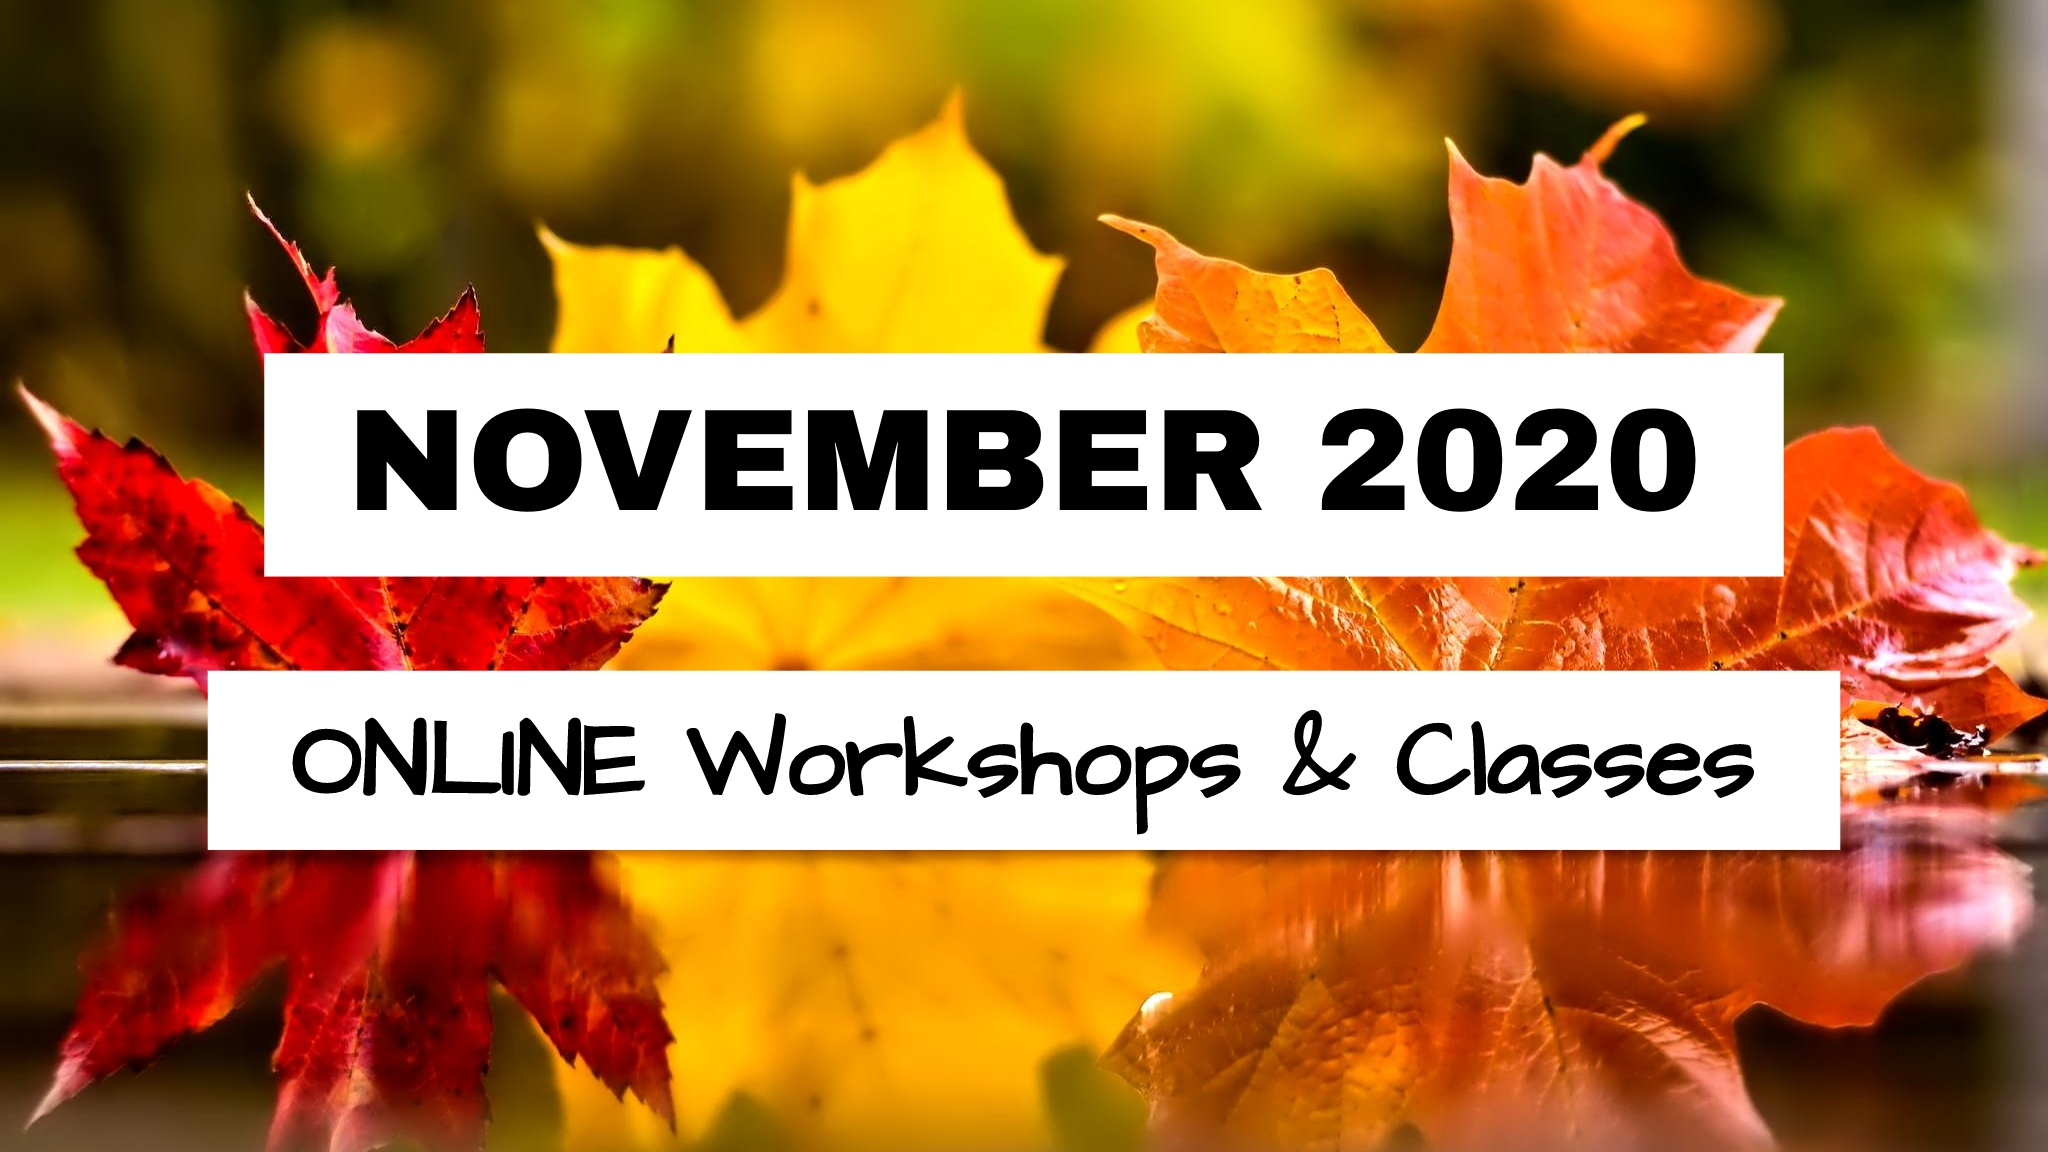 NOVEMBER 2020 – ONLINE Workshops & Classes